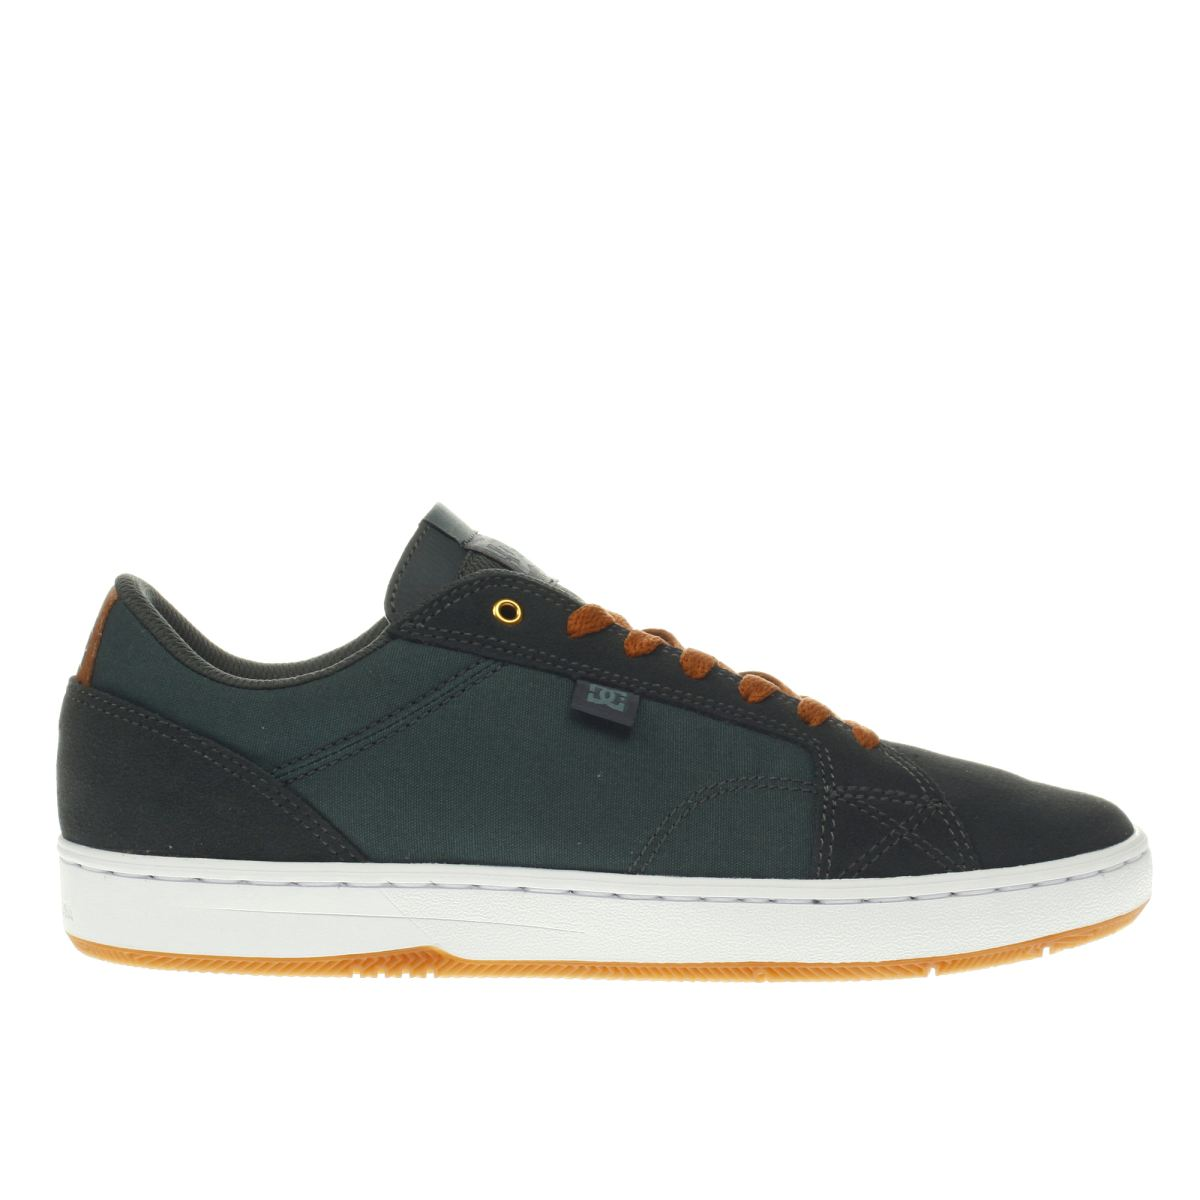 dc shoes Dc Shoes Dark Green Astor Trainers